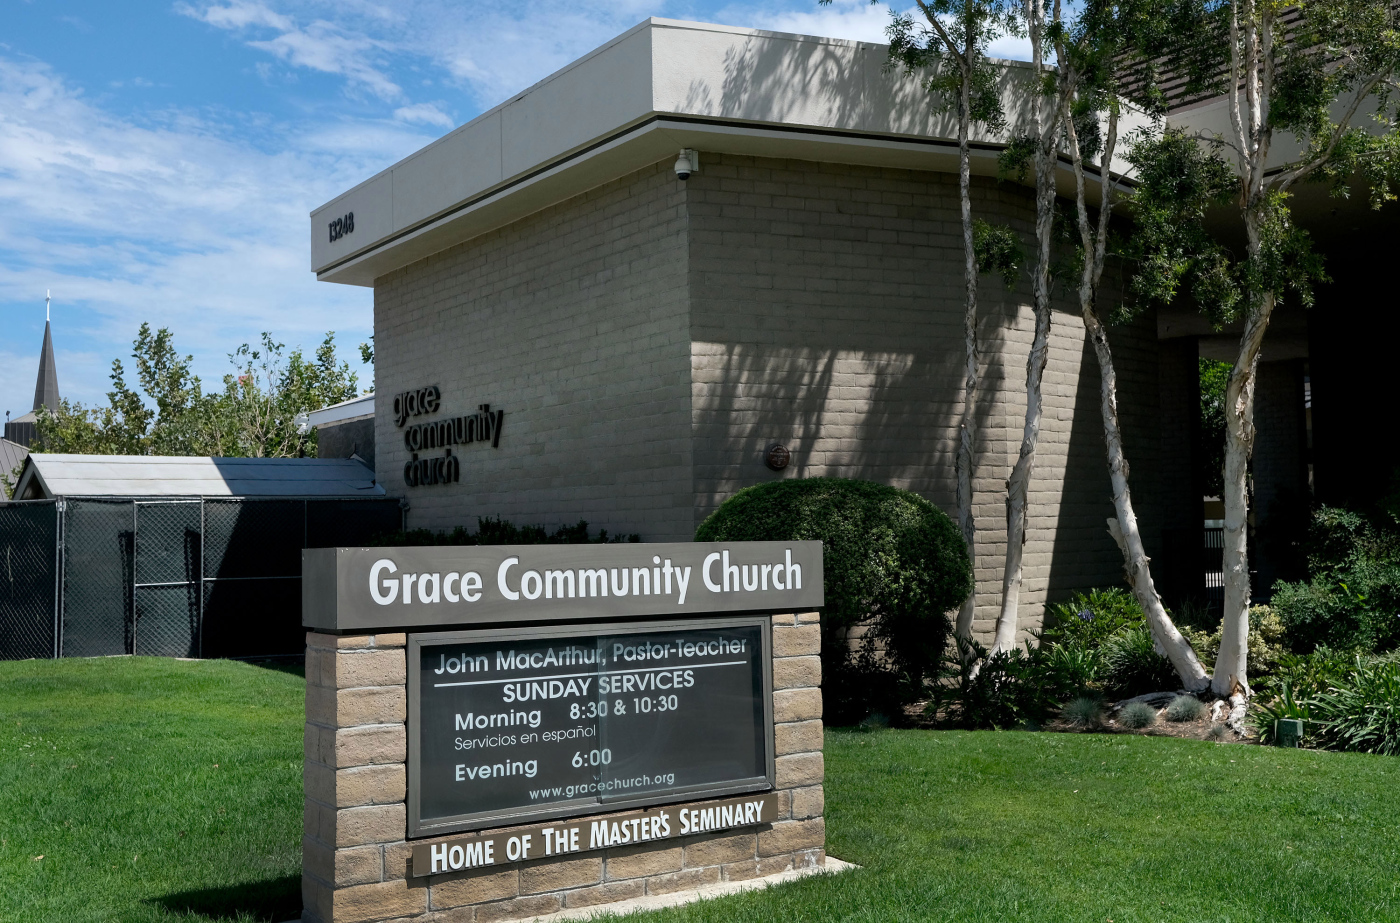 San Fernando Valley church, L.A. County square off in court over indoor ban